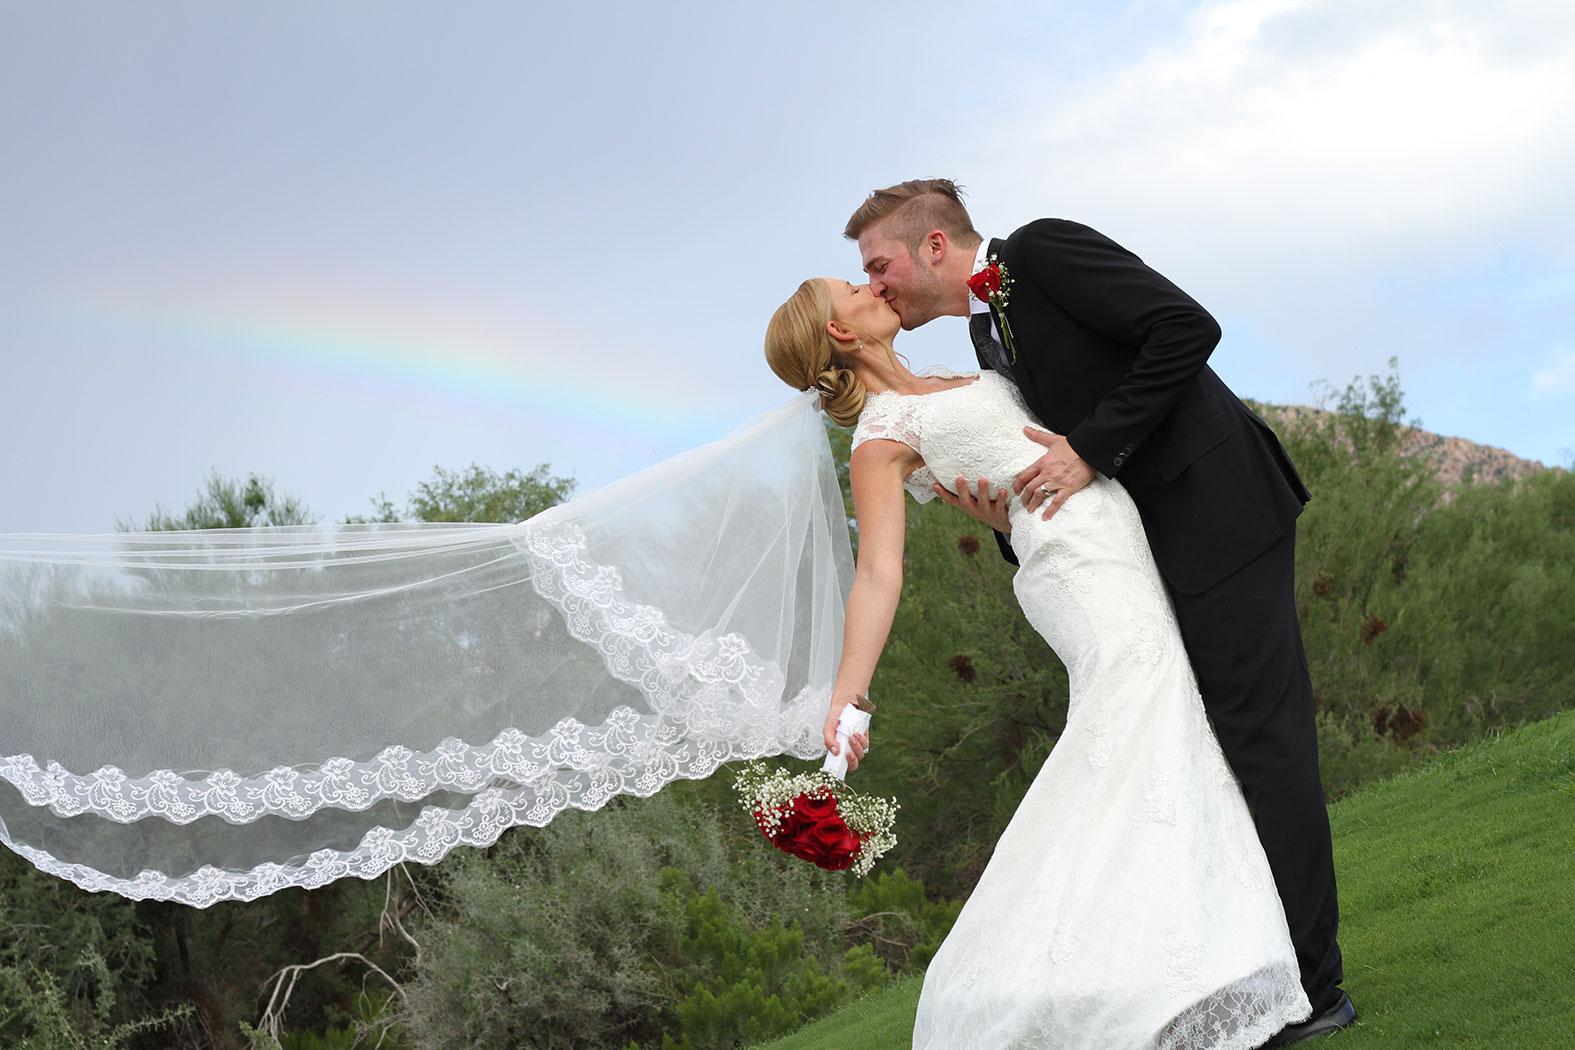 groom kissing bride outside with a rainbow in the background